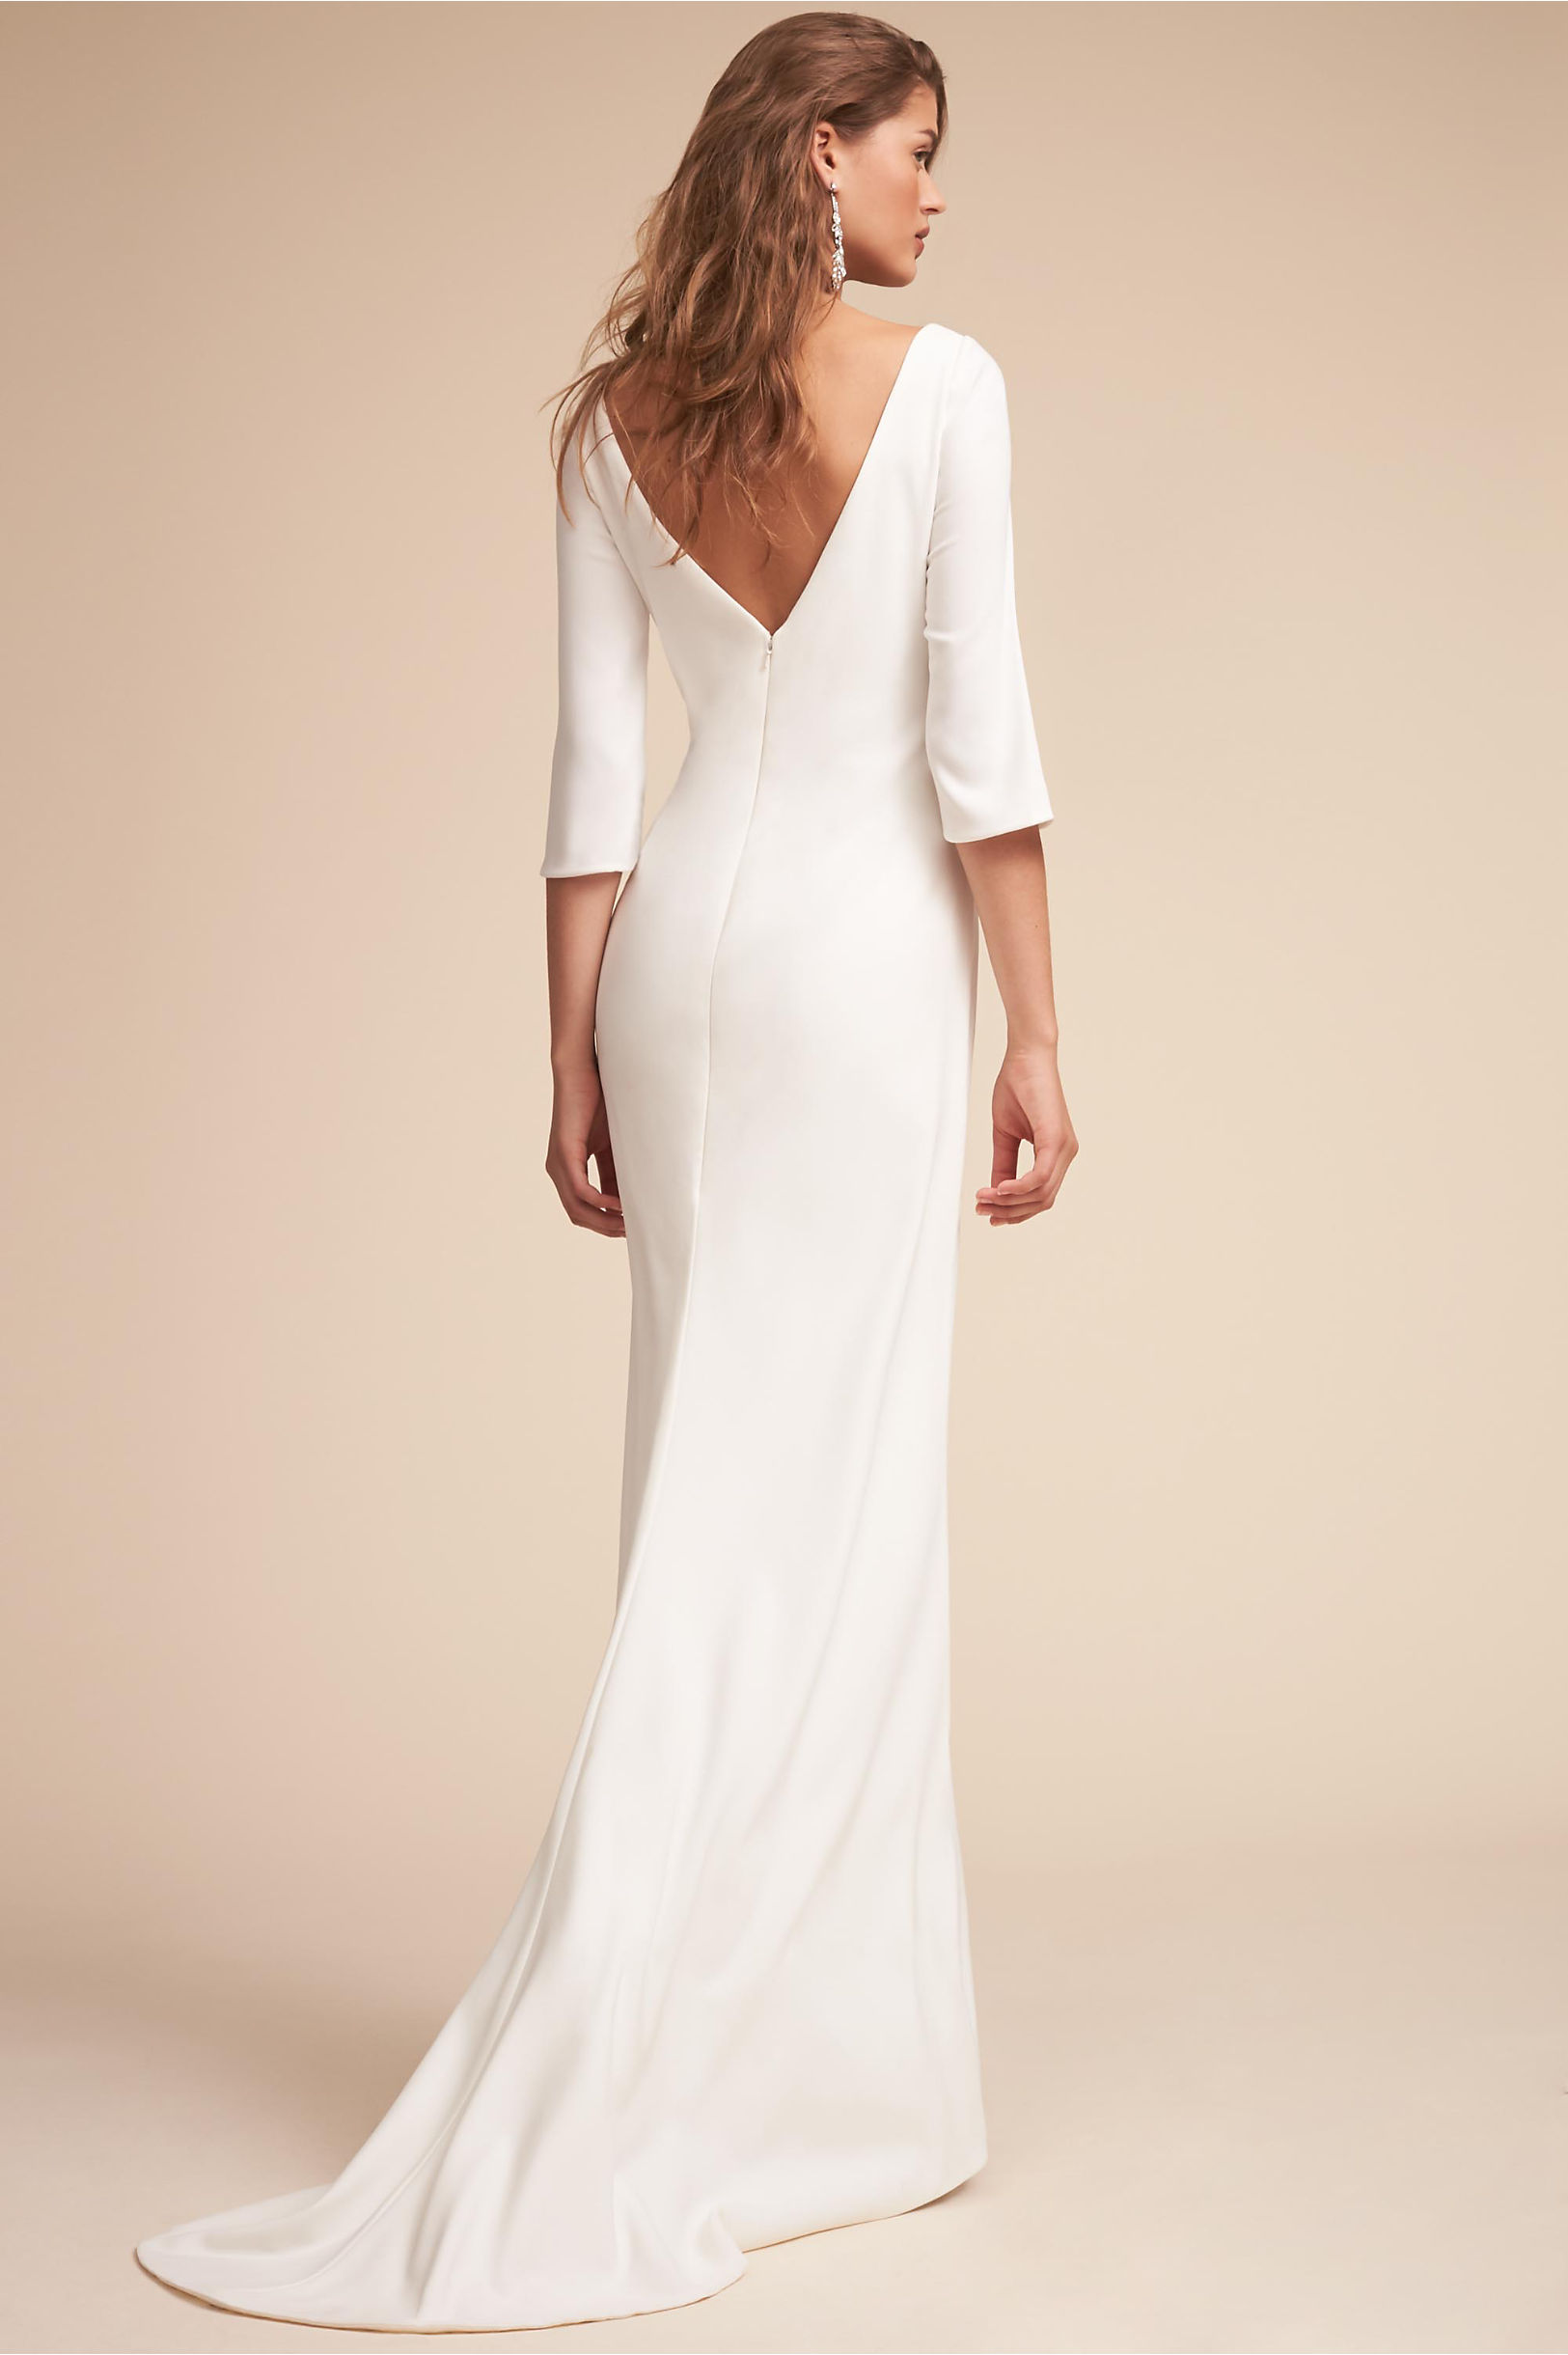 Vintage Inspired Wedding Dress | Vintage Style Wedding Dresses Bacall Gown $900.00 AT vintagedancer.com